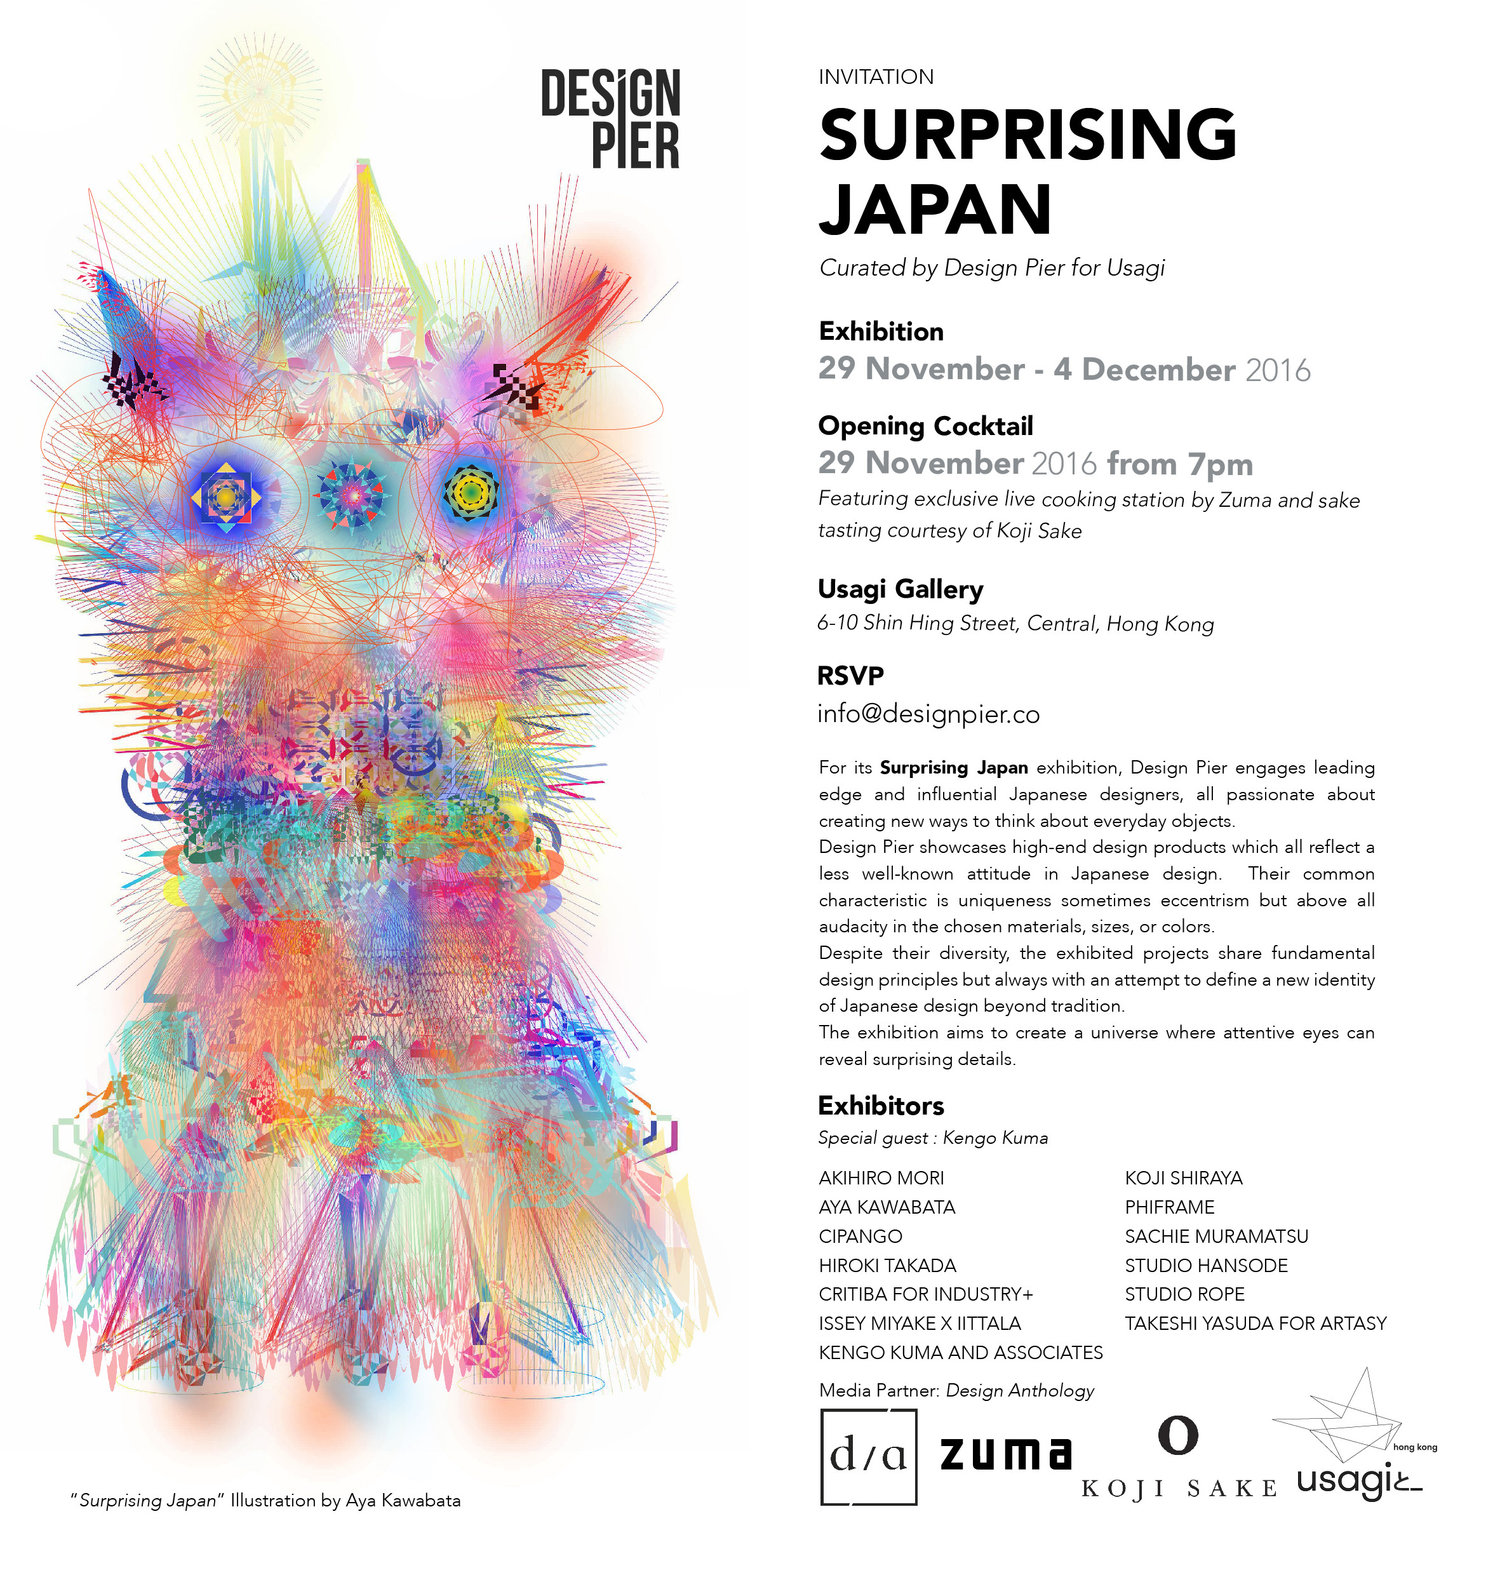 Surprising Japan, Design Pier, usagi. invite